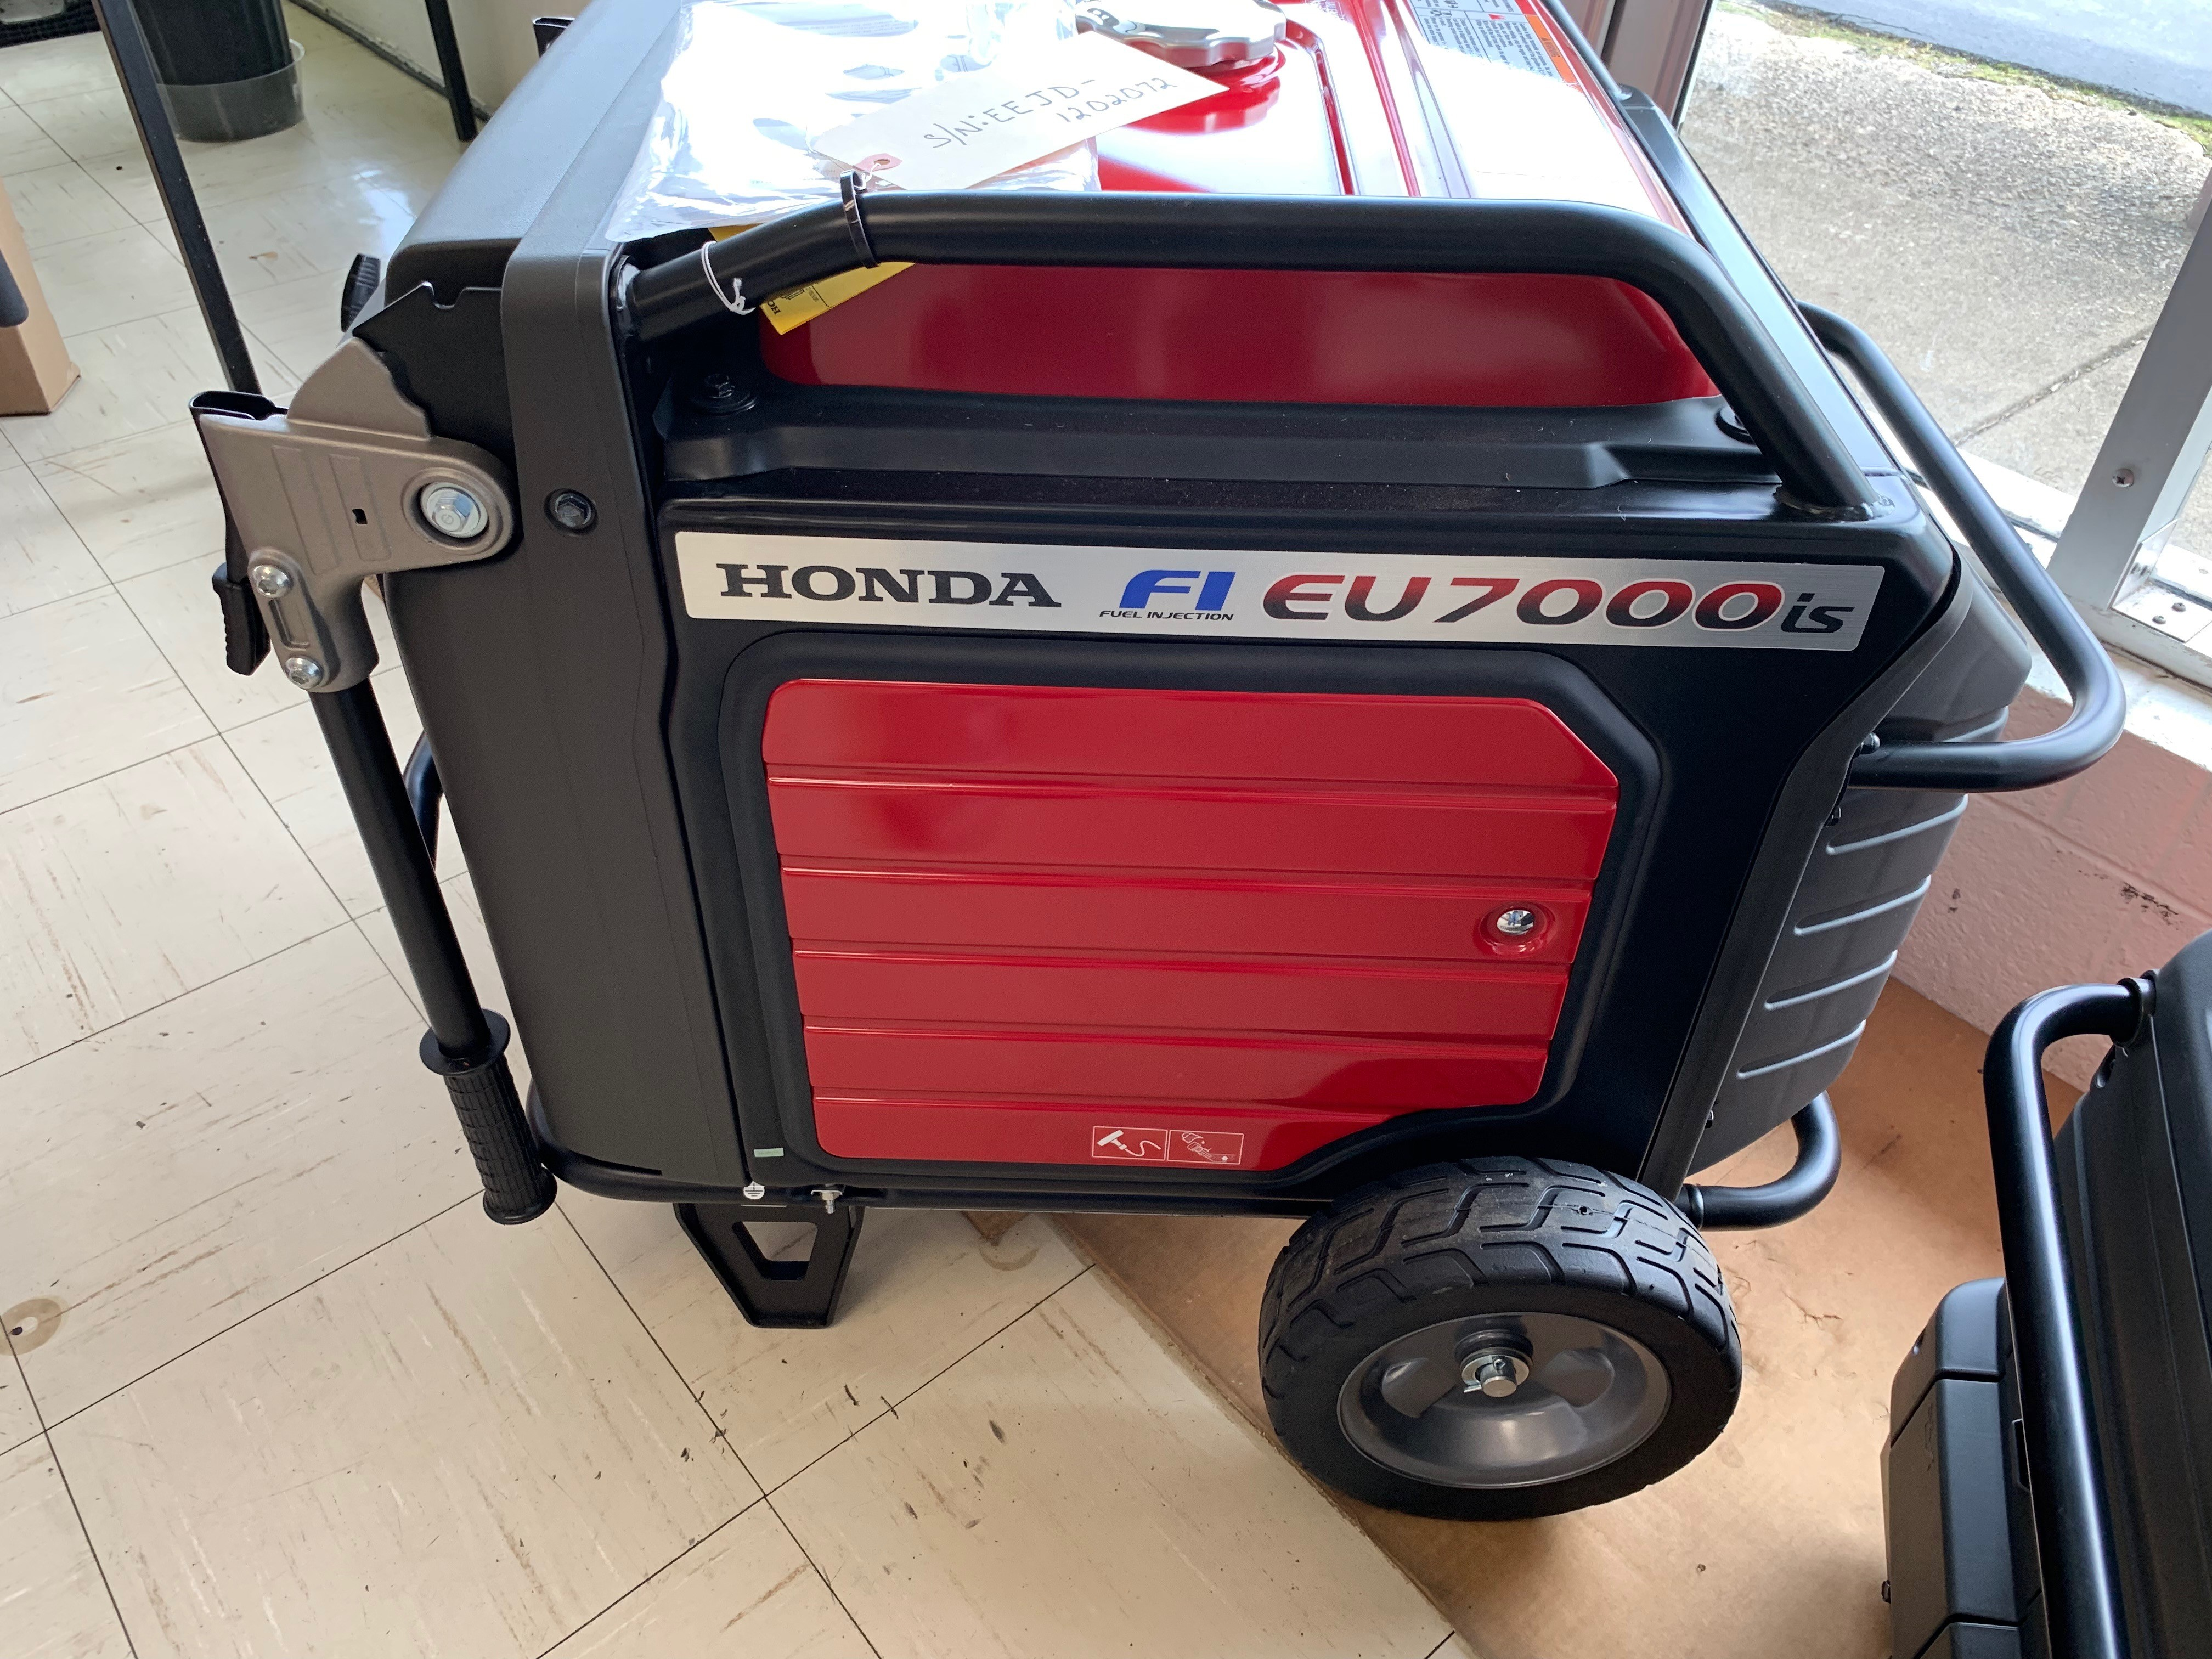 HONDA EU7000is